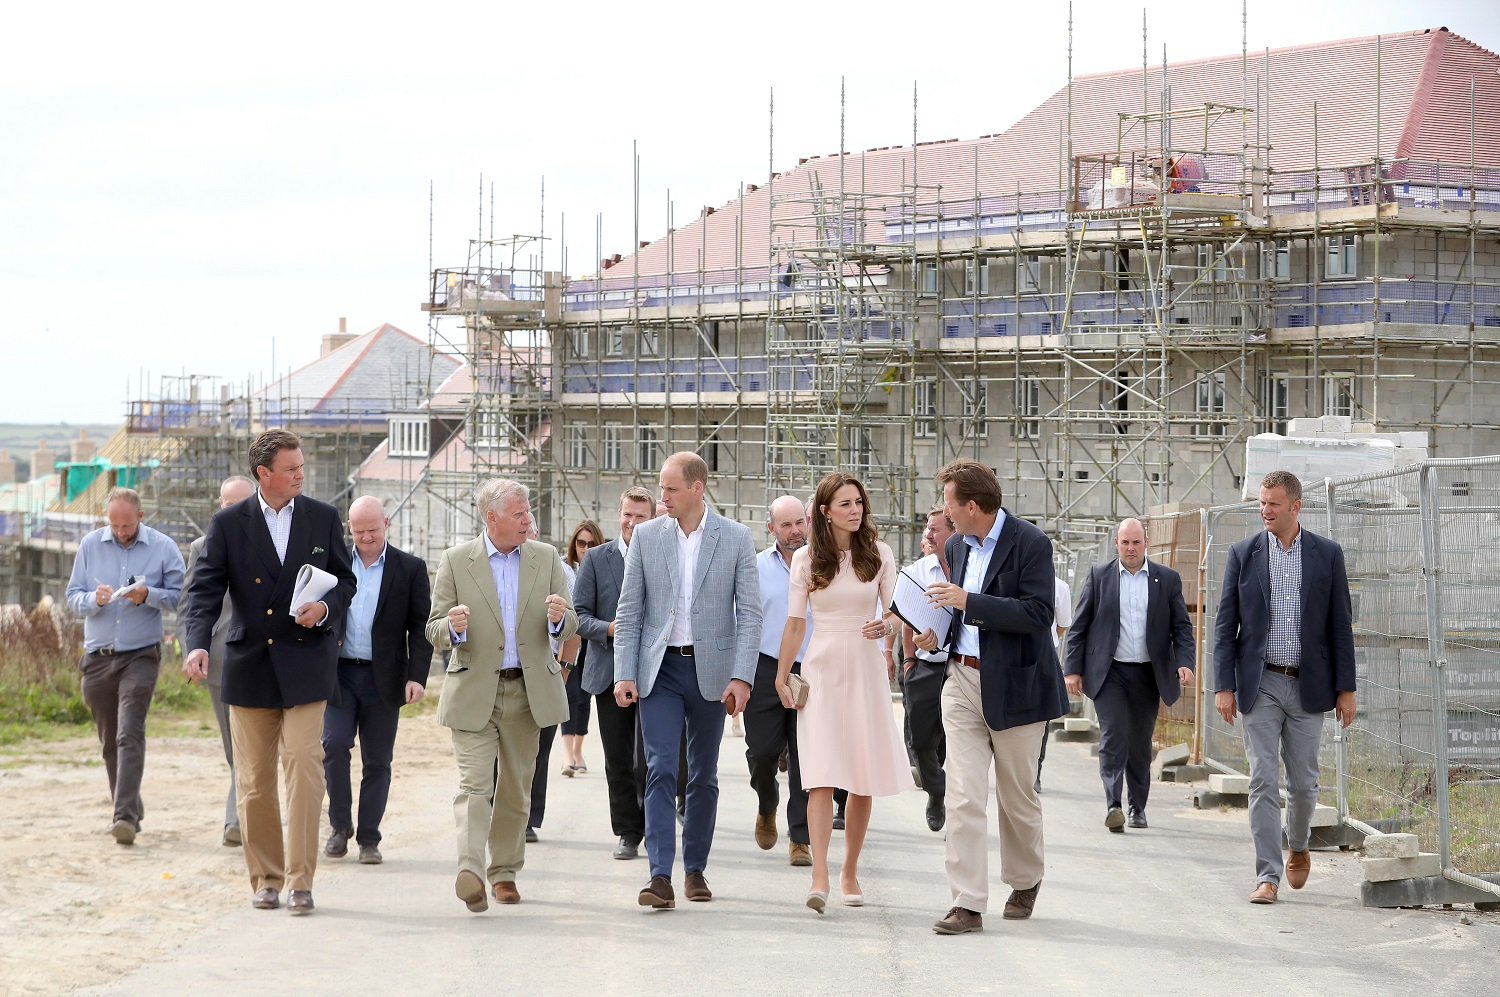 NEWQUAY, ENGLAND - SEPTEMBER 01: Prince William, Duke of Cambridge and Catherine, Duchess of Cambridge (C) visit Nansledan, a 218-hectare site that will provide future business and housing for the local area on September 1, 2016 in Newquay, United Kingdom. (Photo by Chris Jackson - WPA Pool/Getty Images)